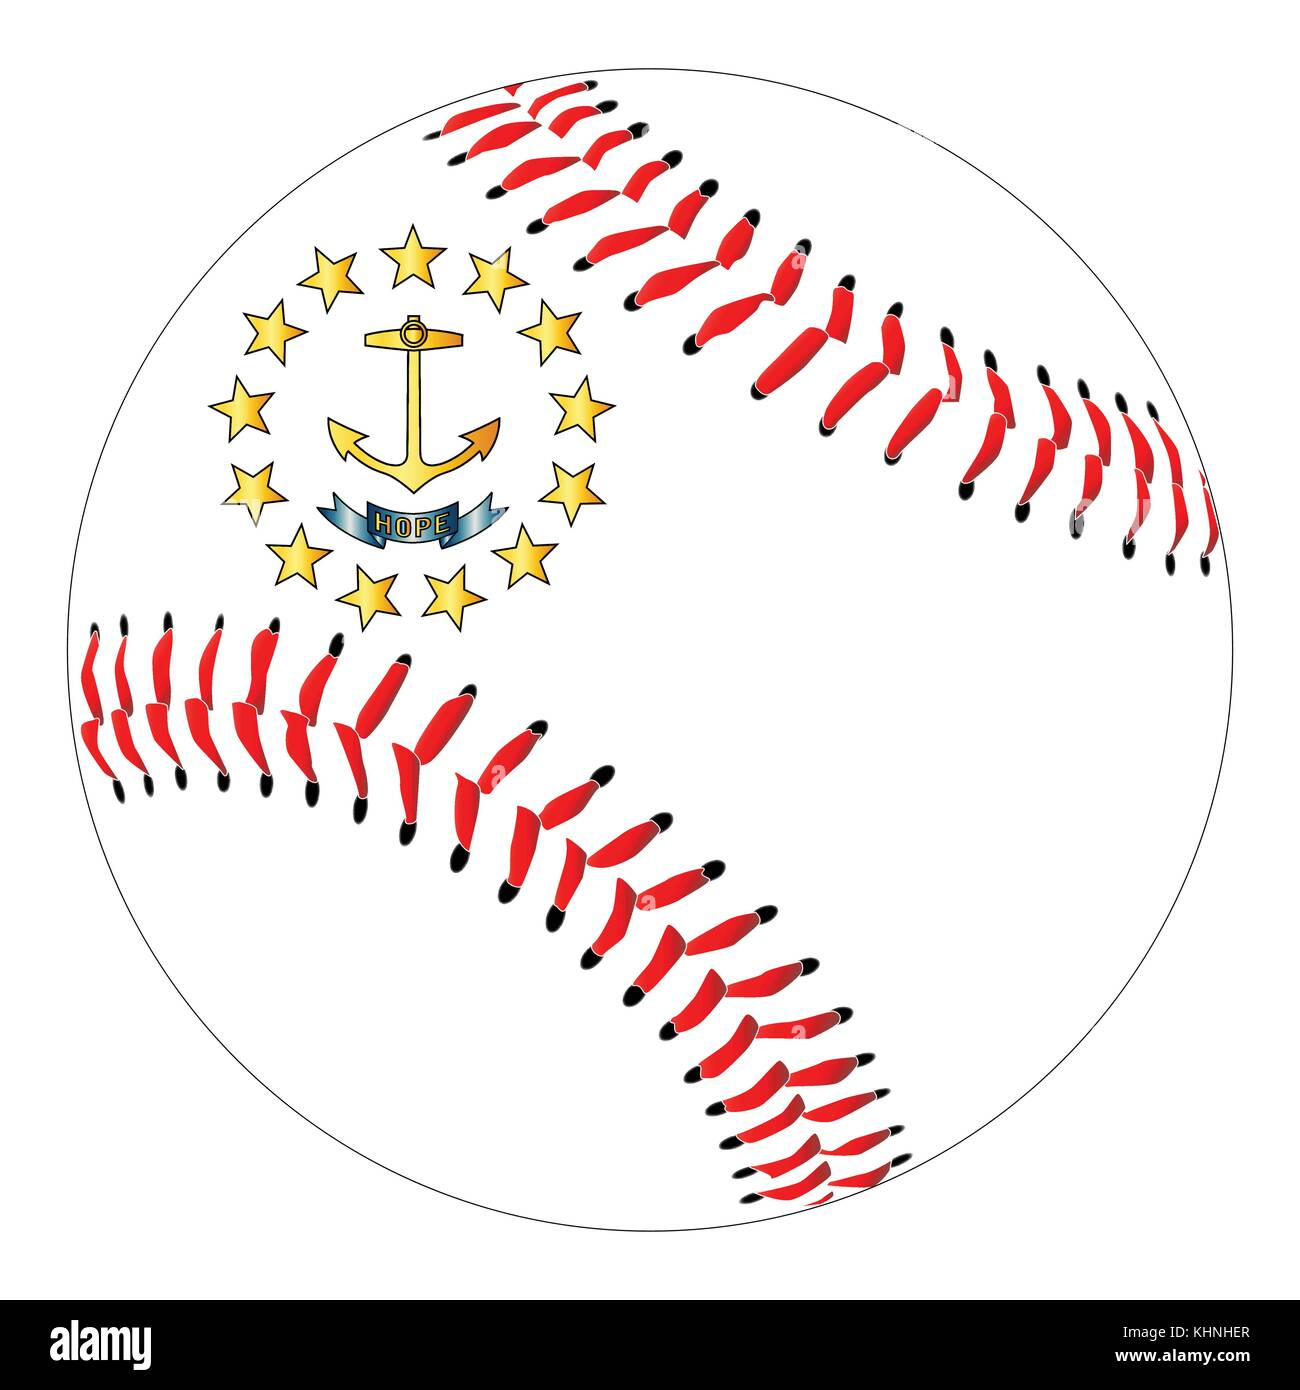 Rhode island state flag stock photos rhode island state flag a new white baseball with red stitching with the rhode island state flag overlay isolated on biocorpaavc Choice Image